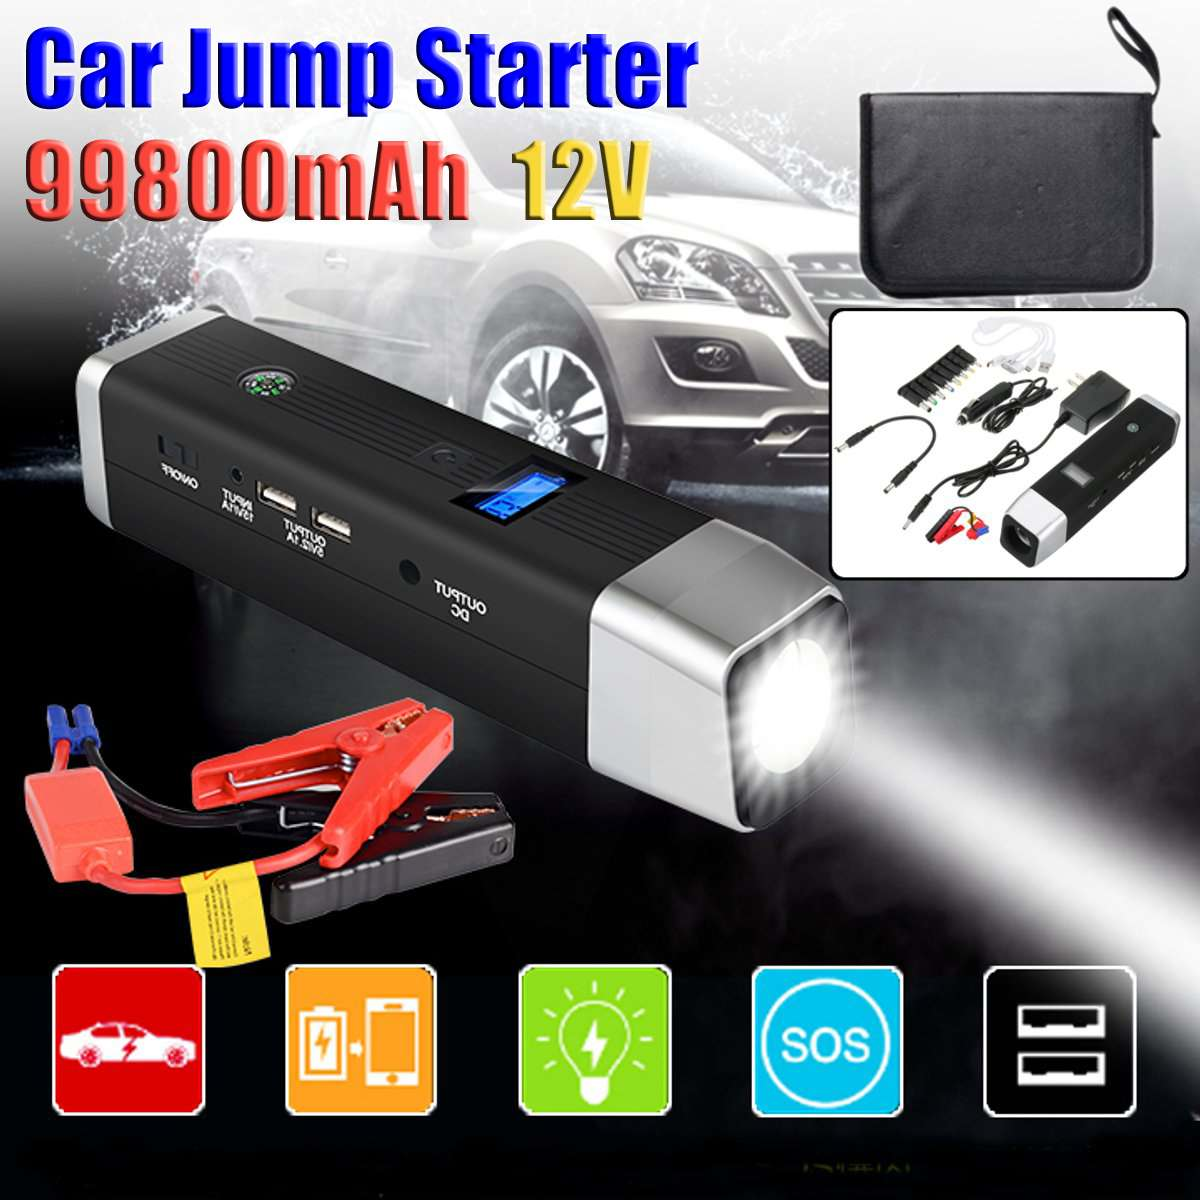 99800mAh USB 12V 600A LED Car Jump Starter Portable Charger Battery Power Bank Car Booster Starting Device emergency hammer99800mAh USB 12V 600A LED Car Jump Starter Portable Charger Battery Power Bank Car Booster Starting Device emergency hammer